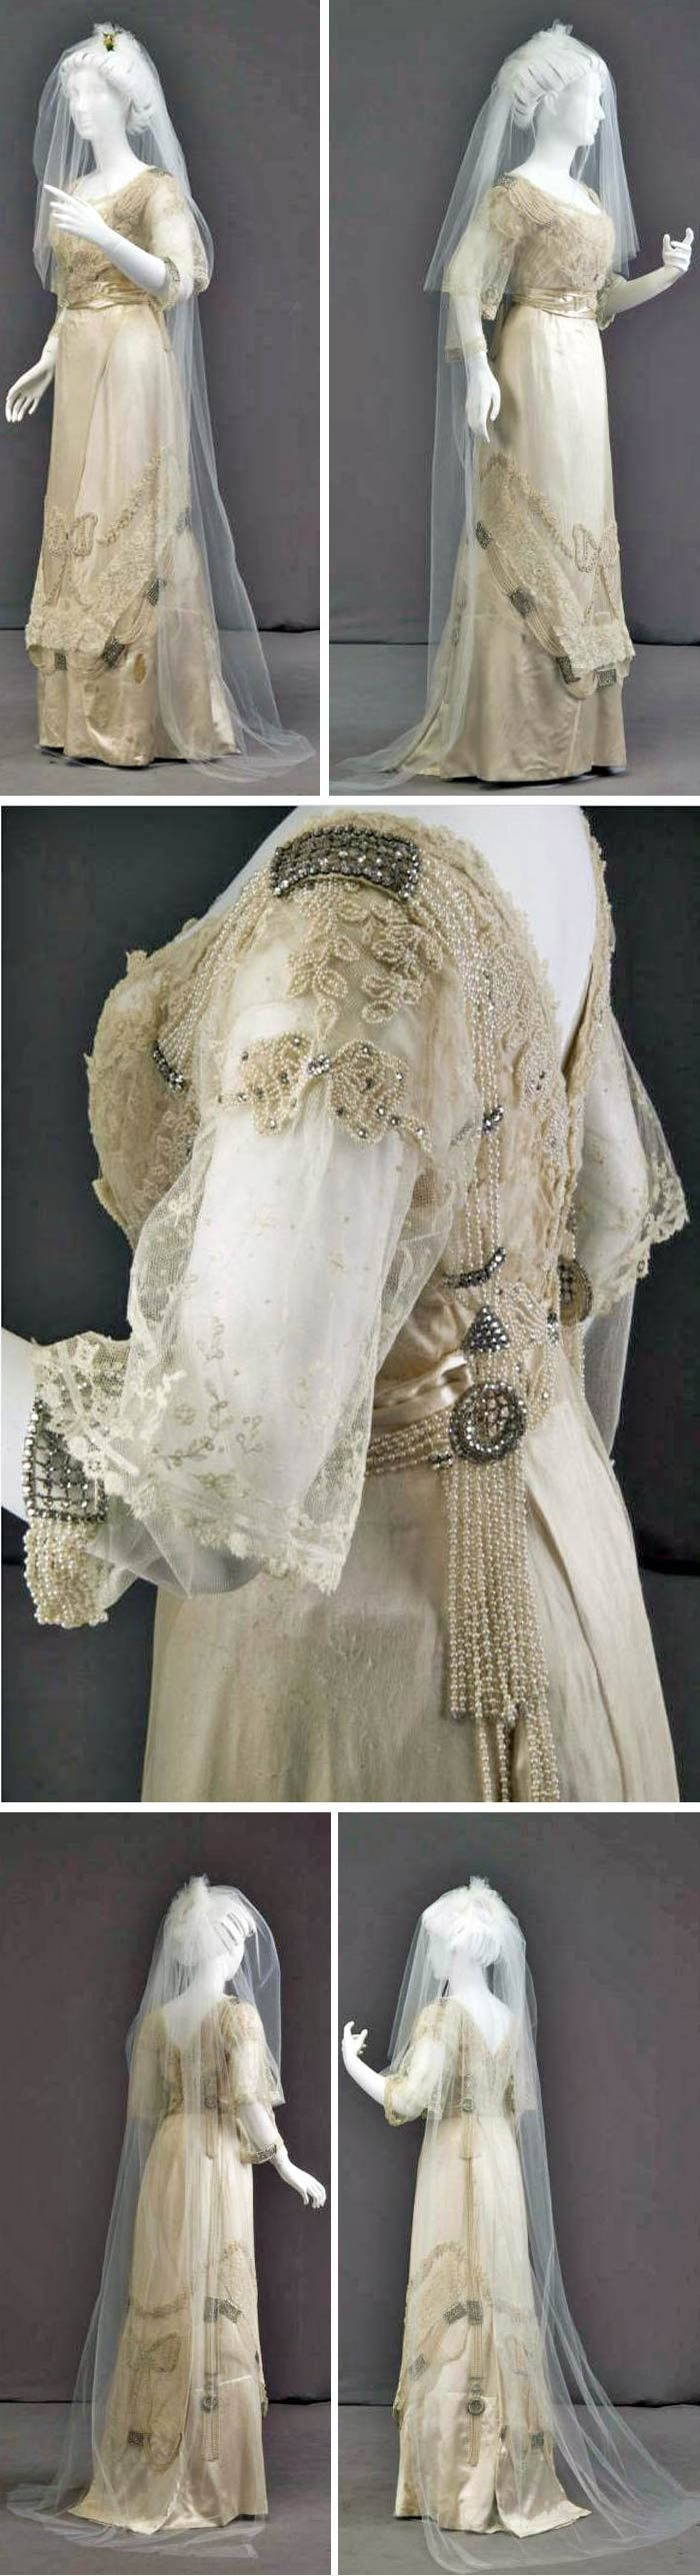 Wedding dress, New Zealand, 1890s. Silk satin